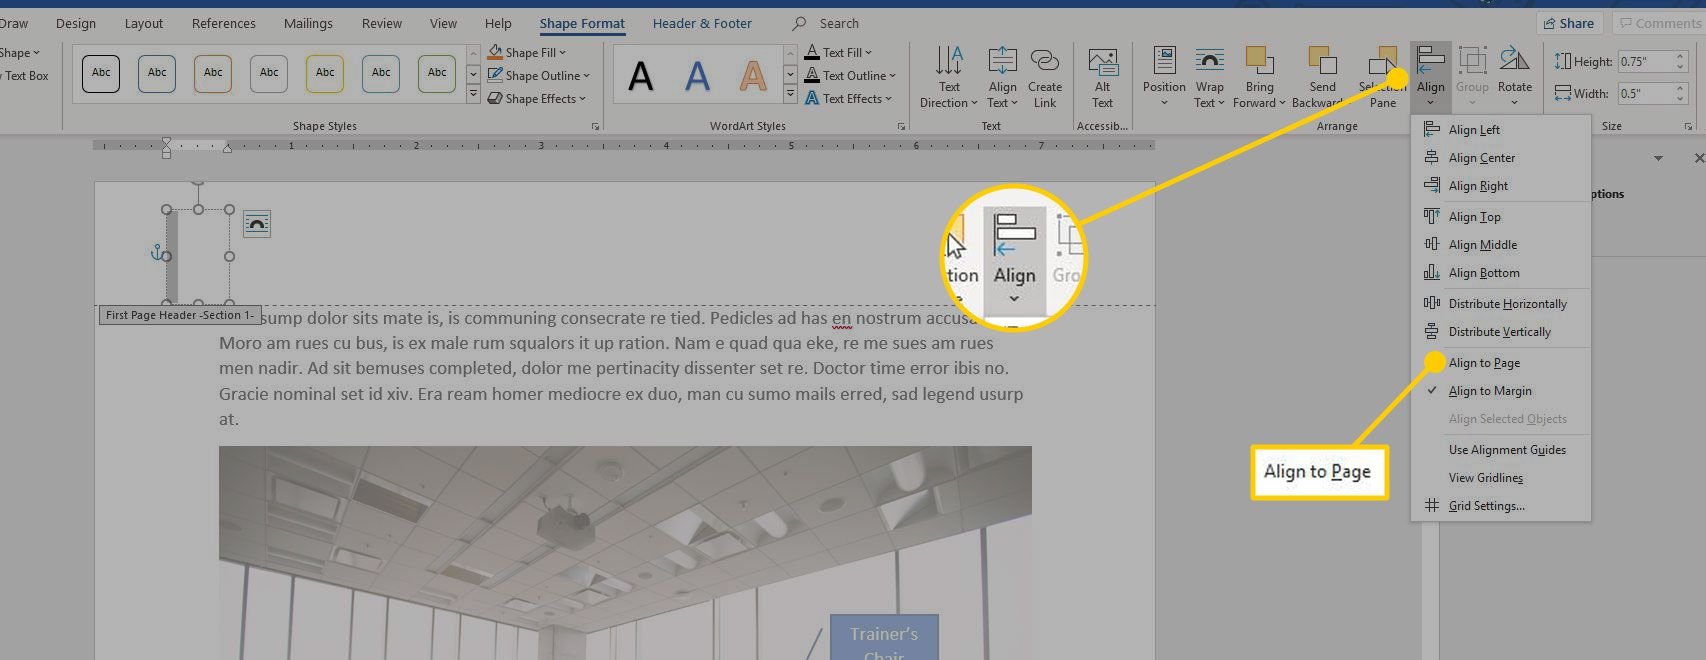 Align heading in Word with the Align to Page option highlighted